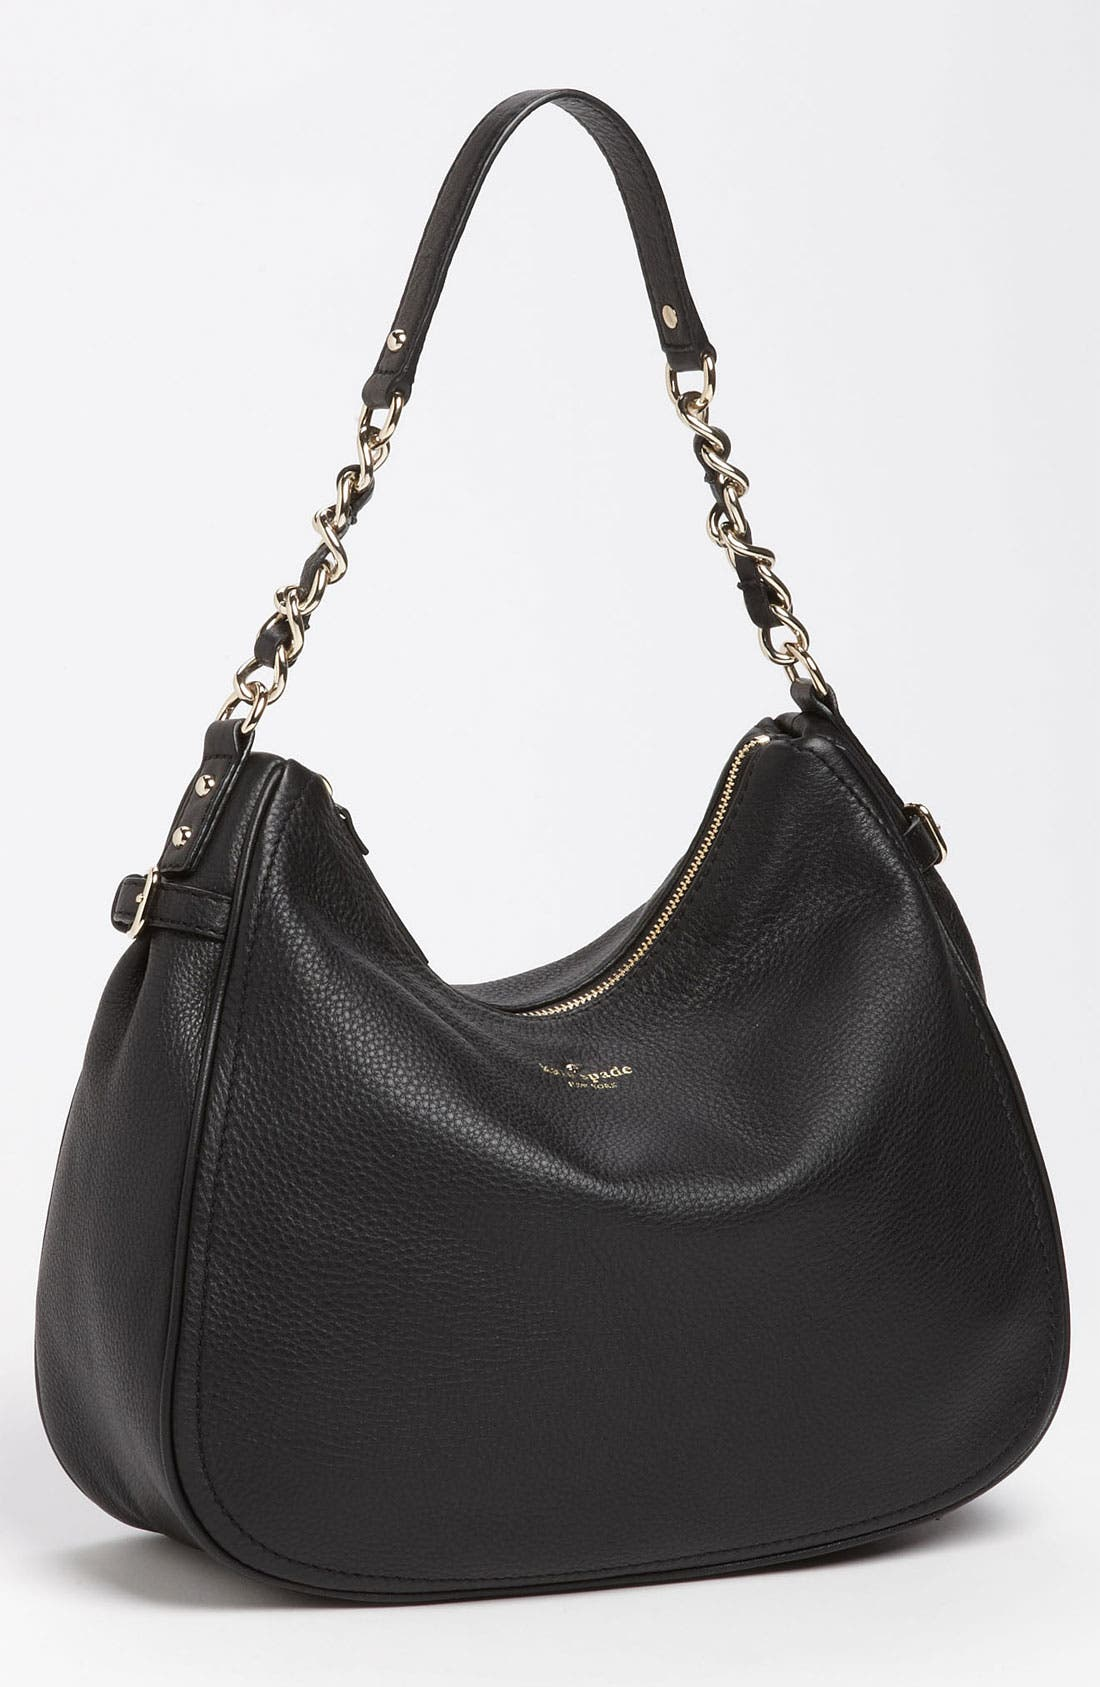 Alternate Image 1 Selected - kate spade new york 'cobble hill - finley' hobo